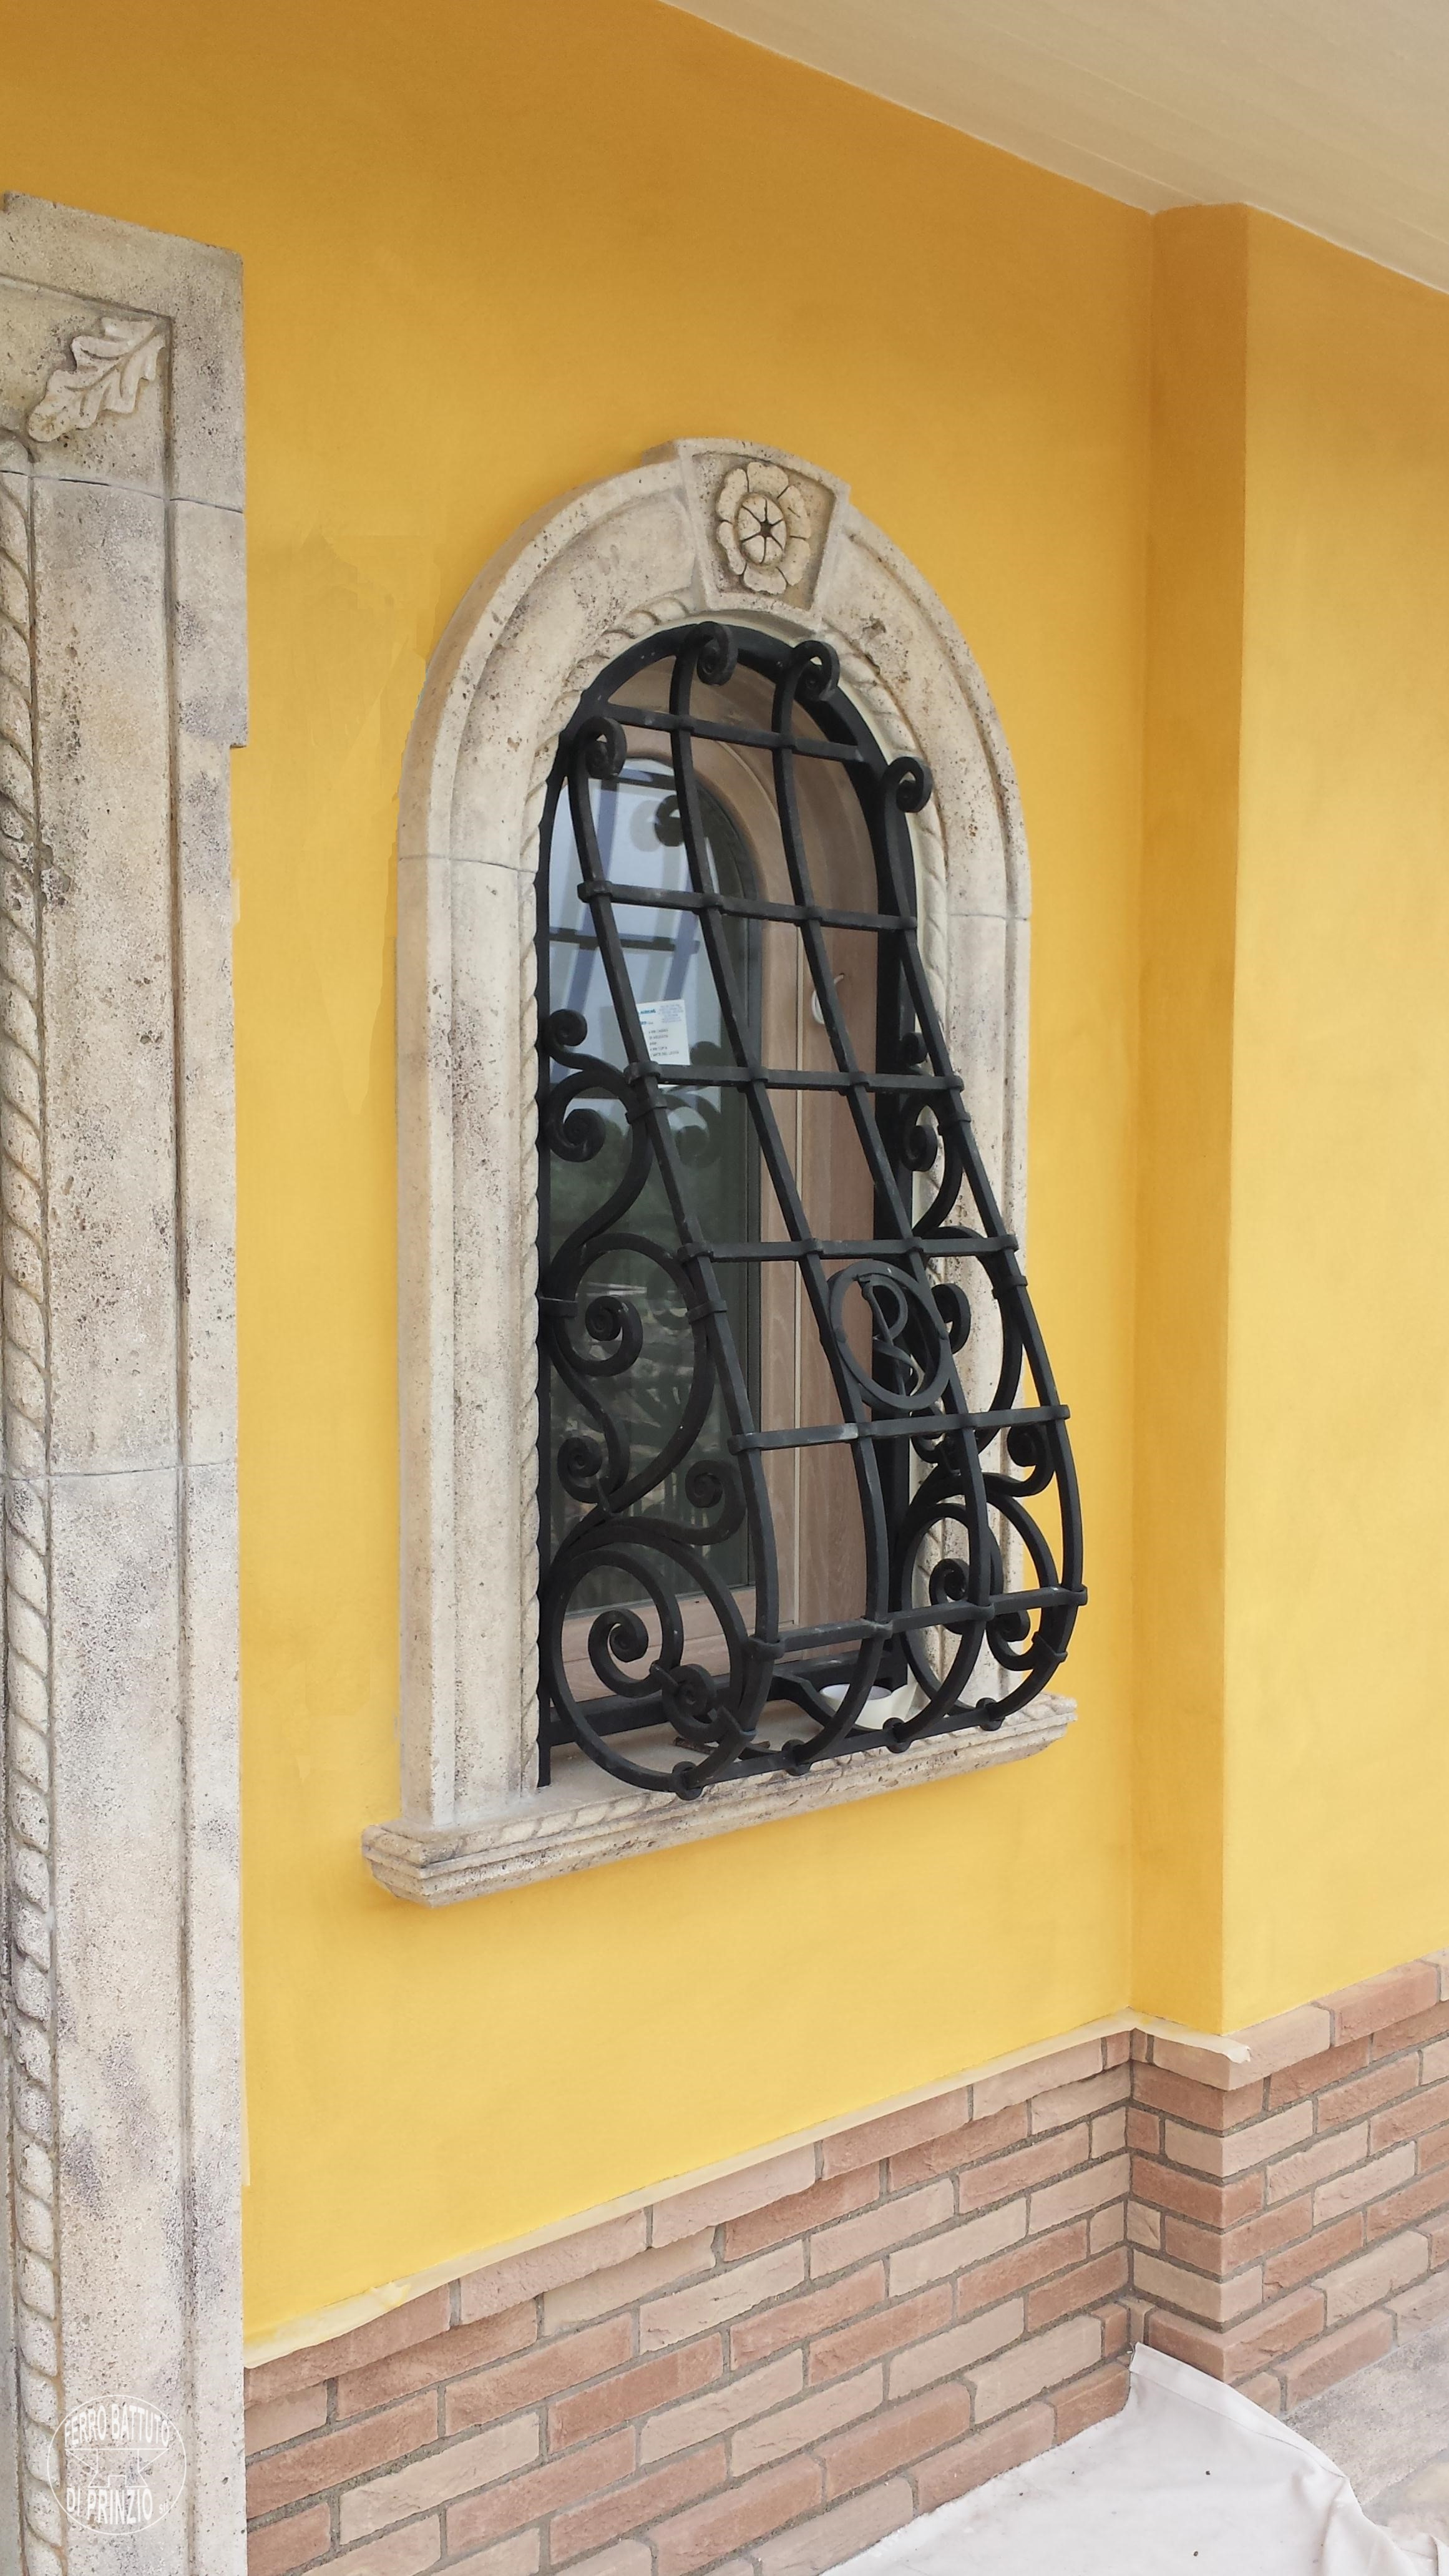 Wrought iron grilles and protections, gates, grille for window, fencing